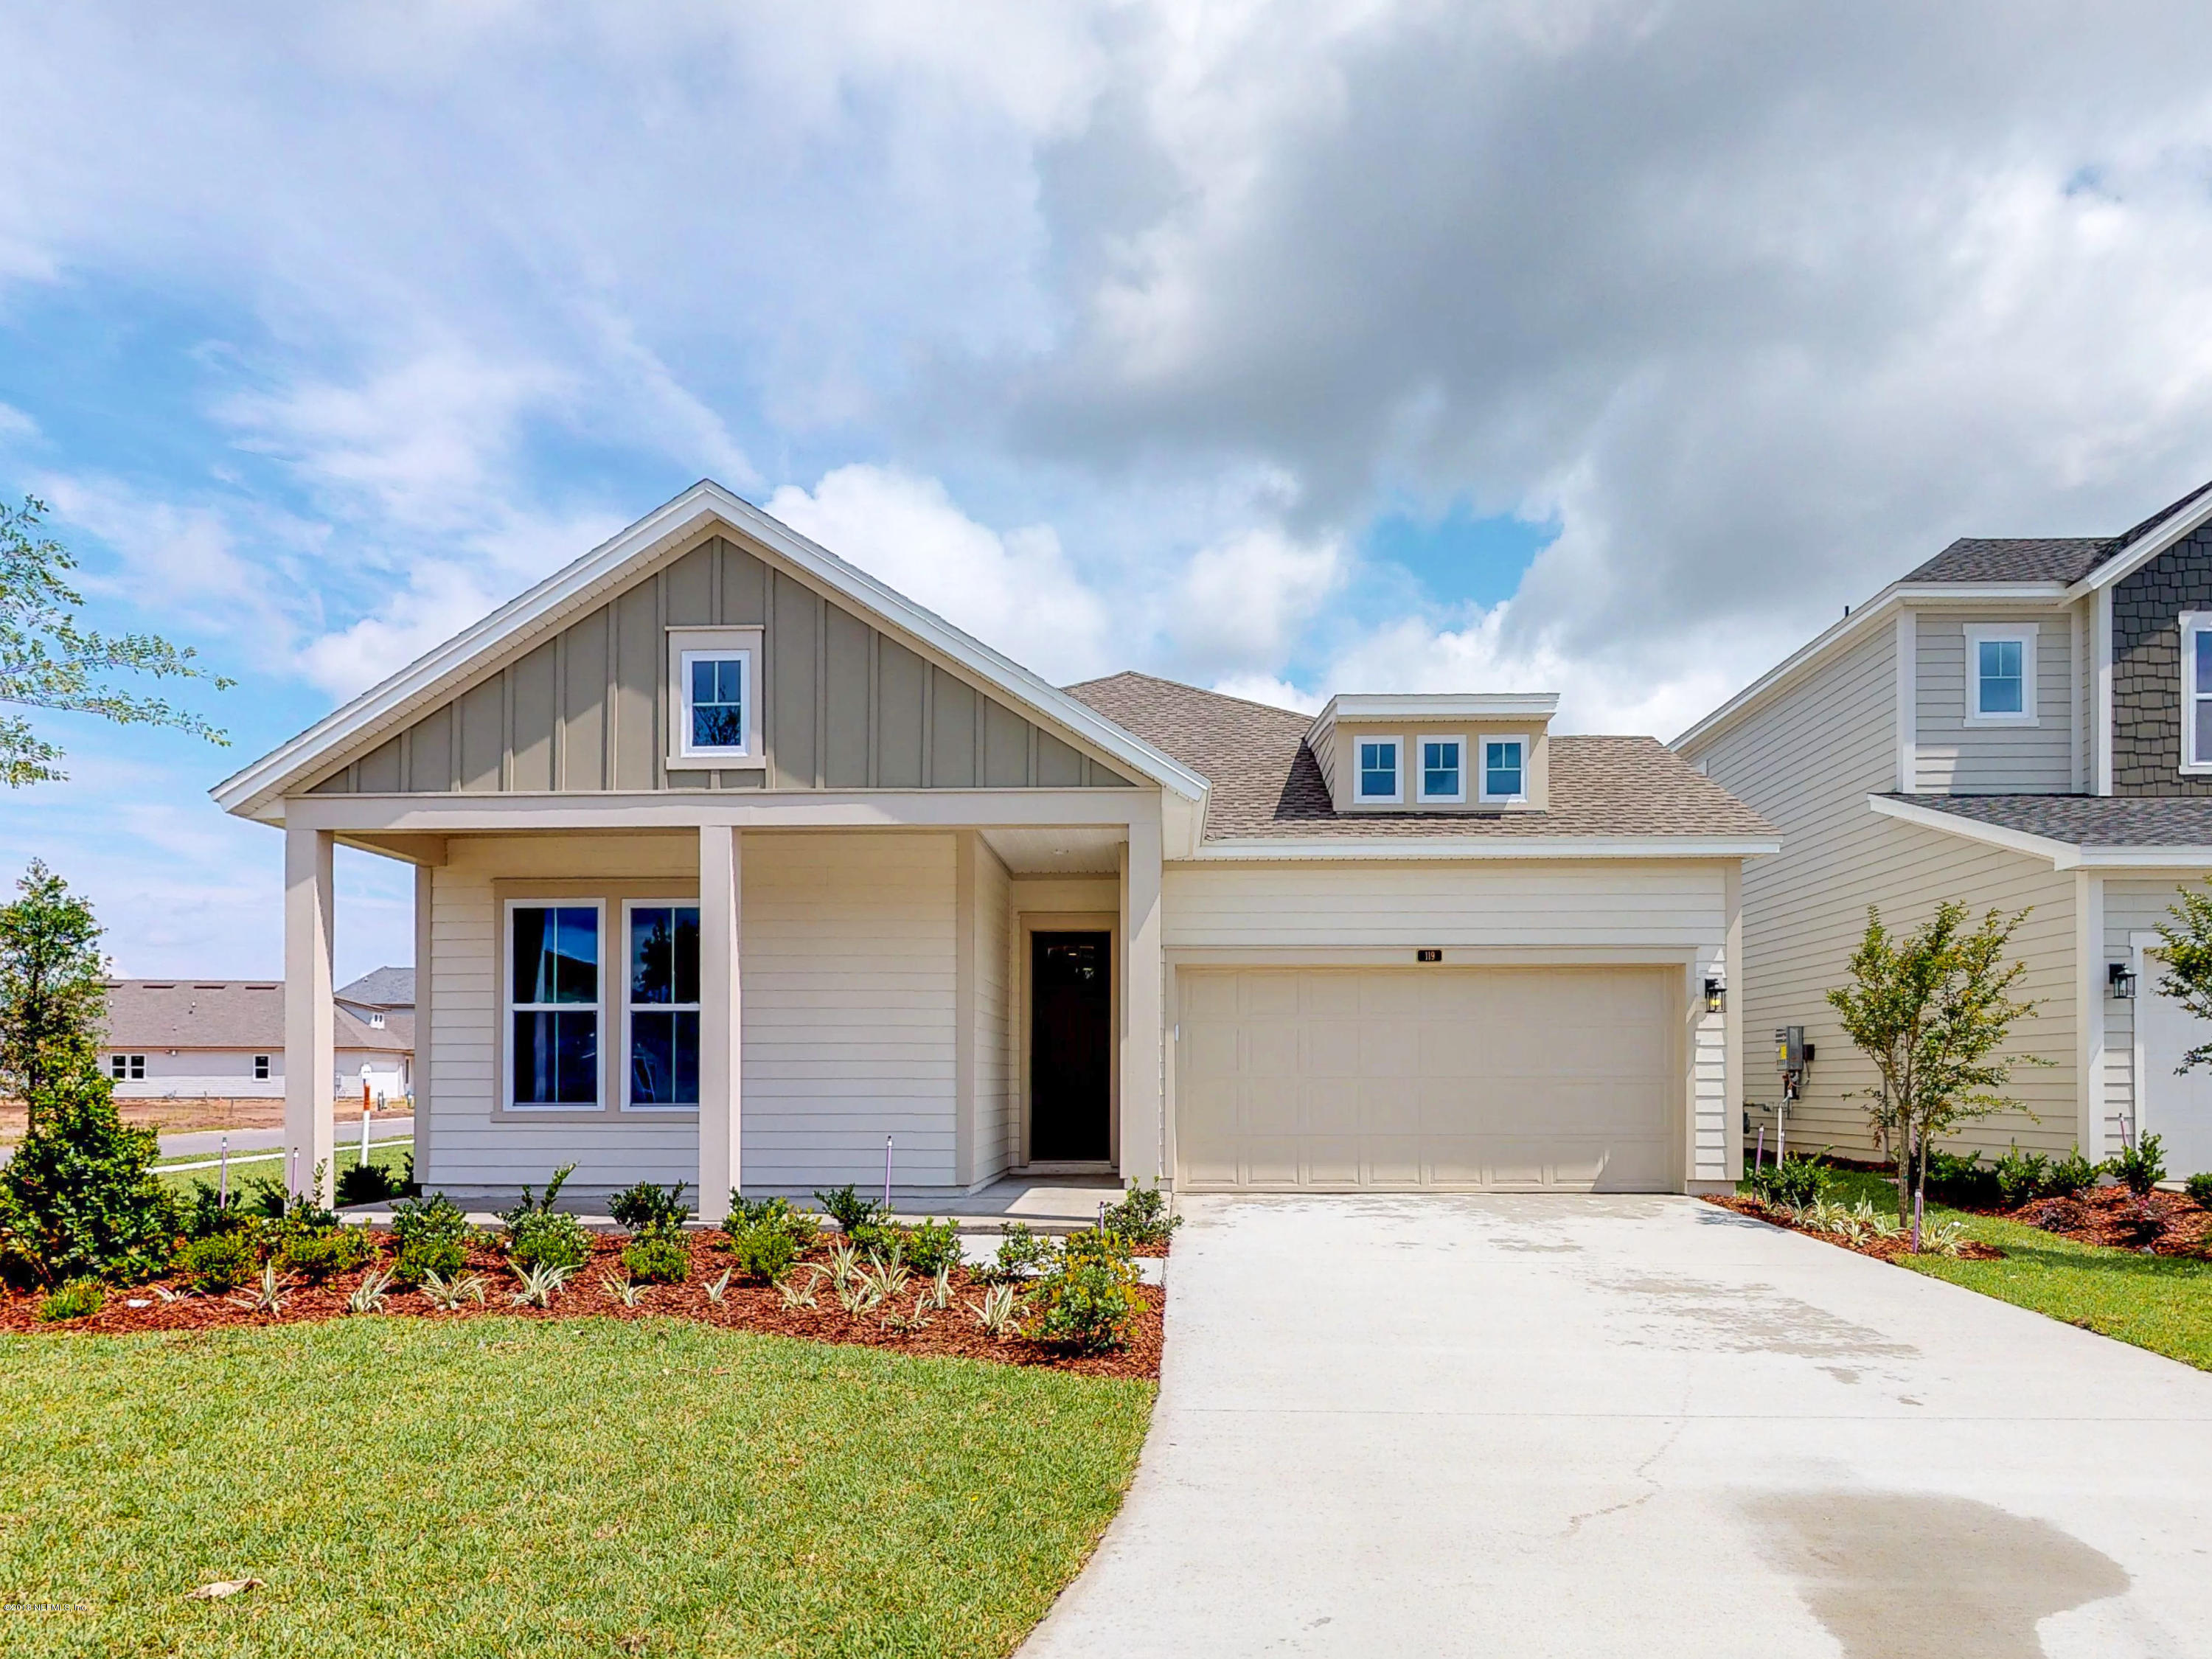 119 SUNRISE VISTA, PONTE VEDRA, FLORIDA 32081, 3 Bedrooms Bedrooms, ,2 BathroomsBathrooms,Residential - single family,For sale,SUNRISE VISTA,921105